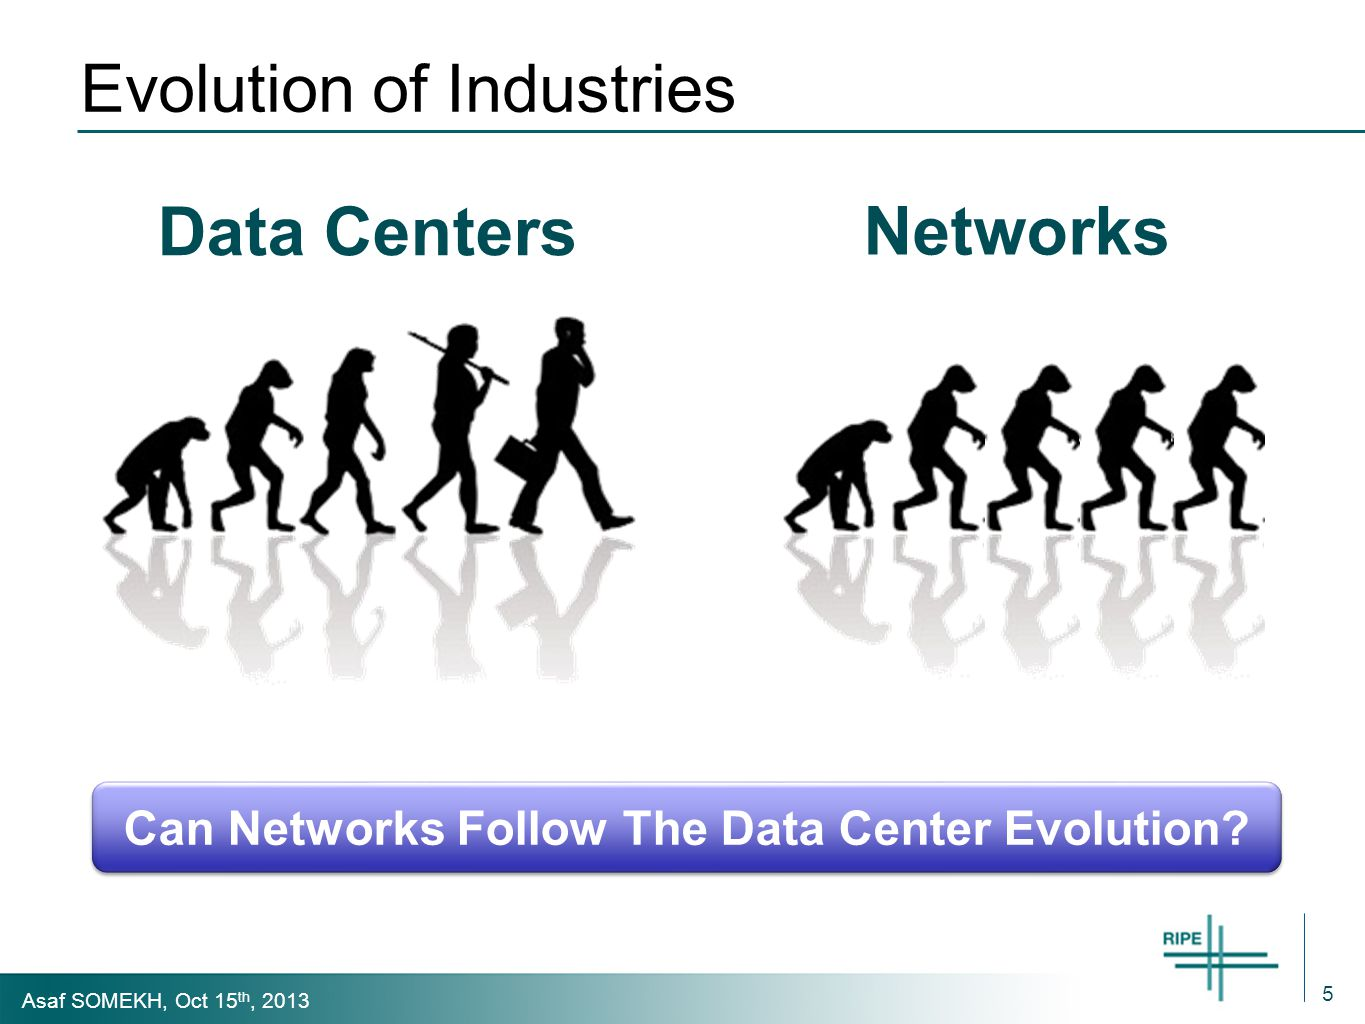 Asaf SOMEKH, Oct 15 th, 2013 Evolution of Industries 5 Data Centers Networks Can Networks Follow The Data Center Evolution